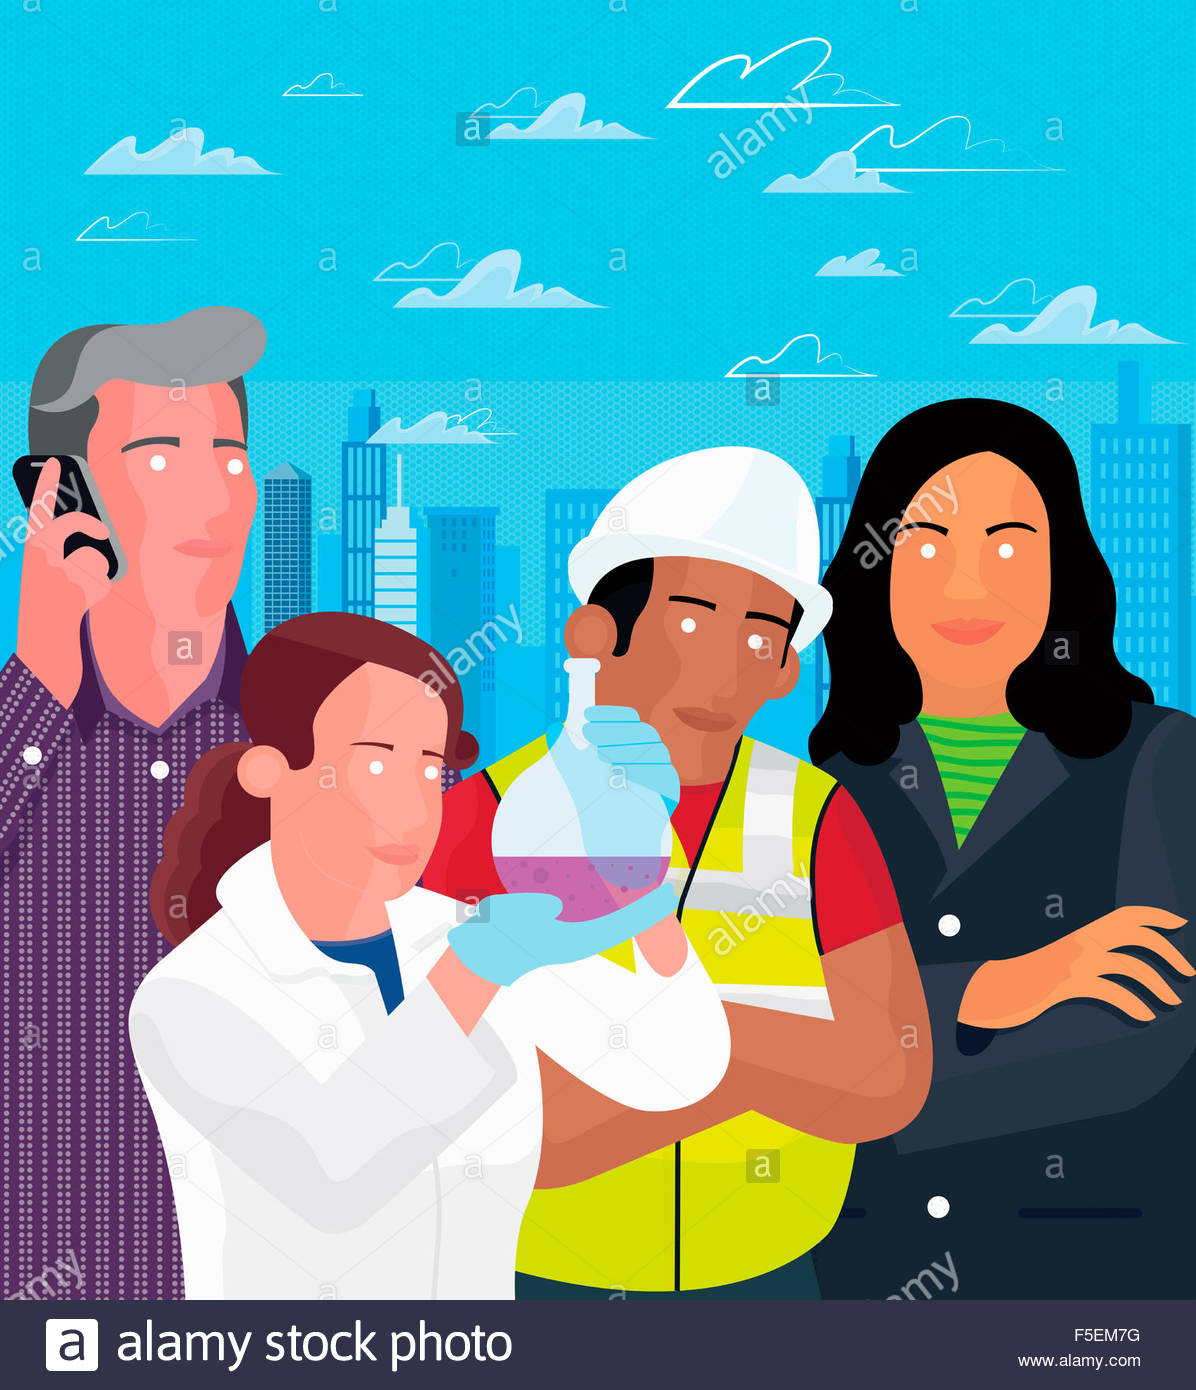 Scientist, construction worker, and business people standing together in front of city skyline - Stock Image